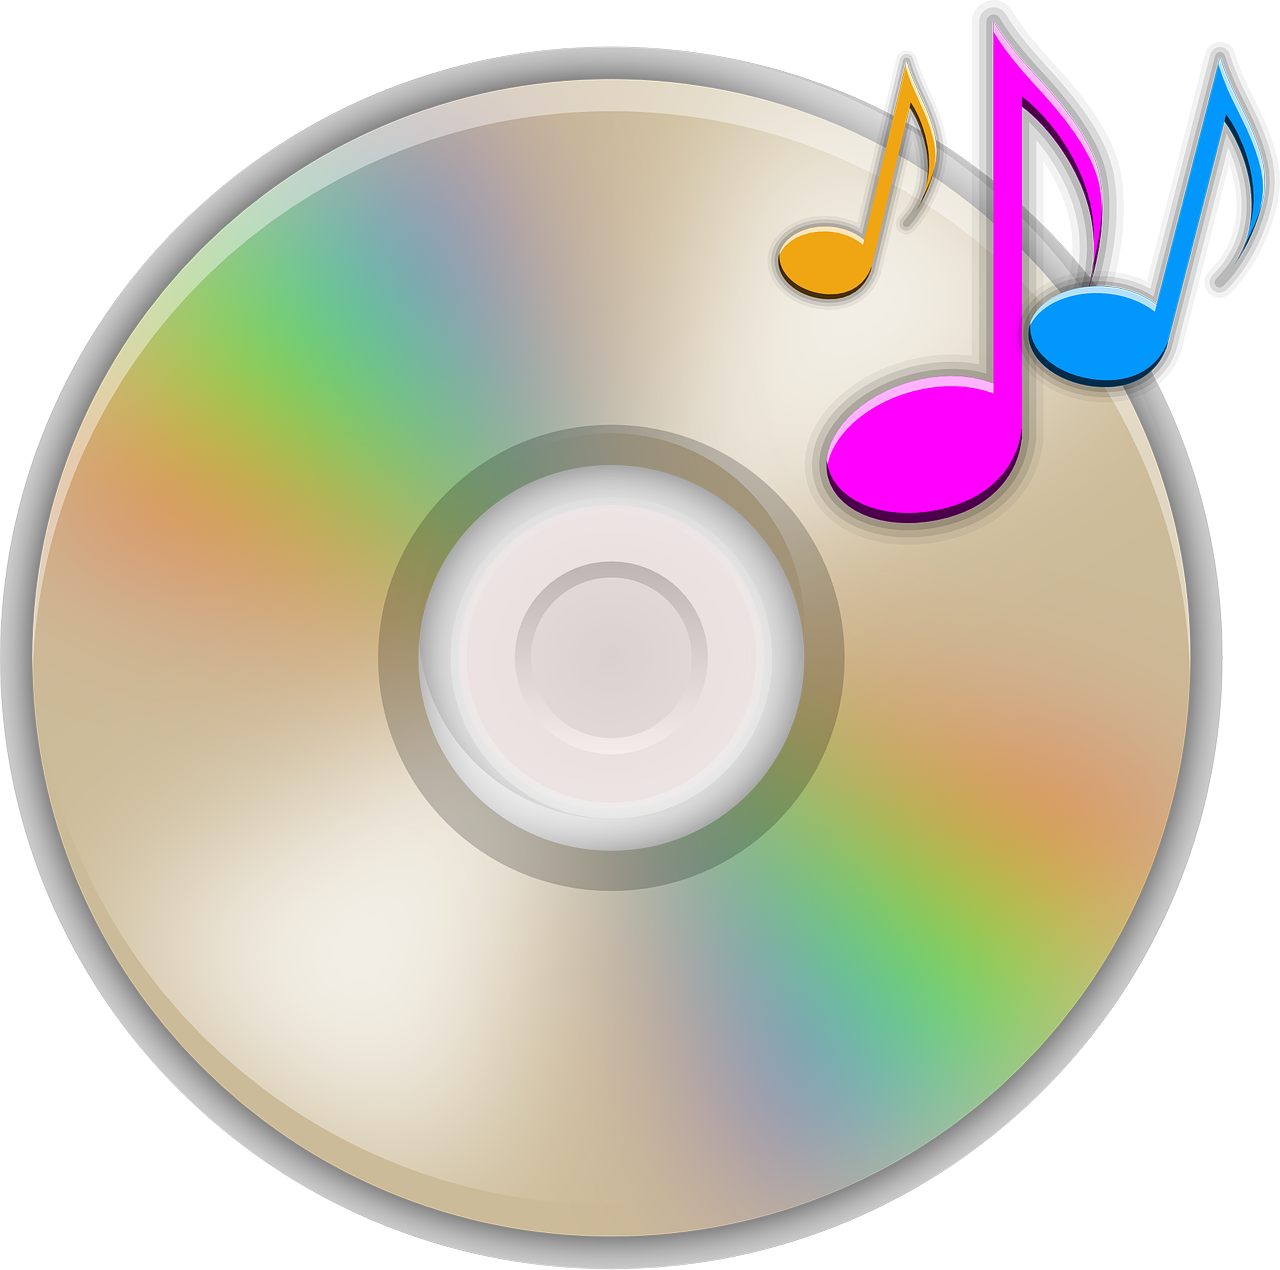 Deliver A Huge List Of Sound Effects To Use For Ringtones Etc..